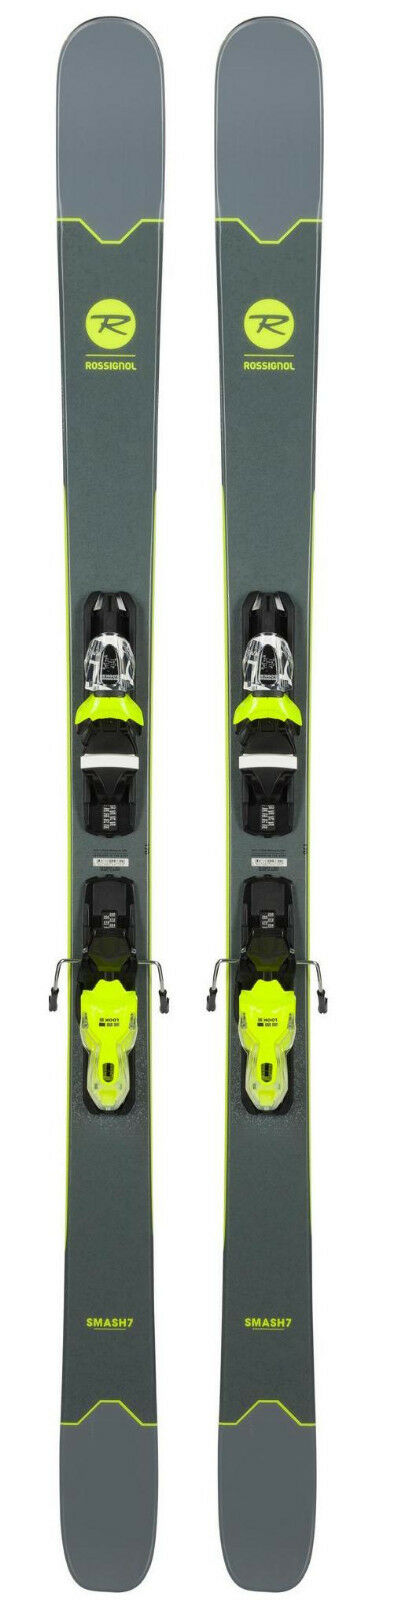 Rossignol Smash 7 snow skis 160cm with bindings (NEW 2019)